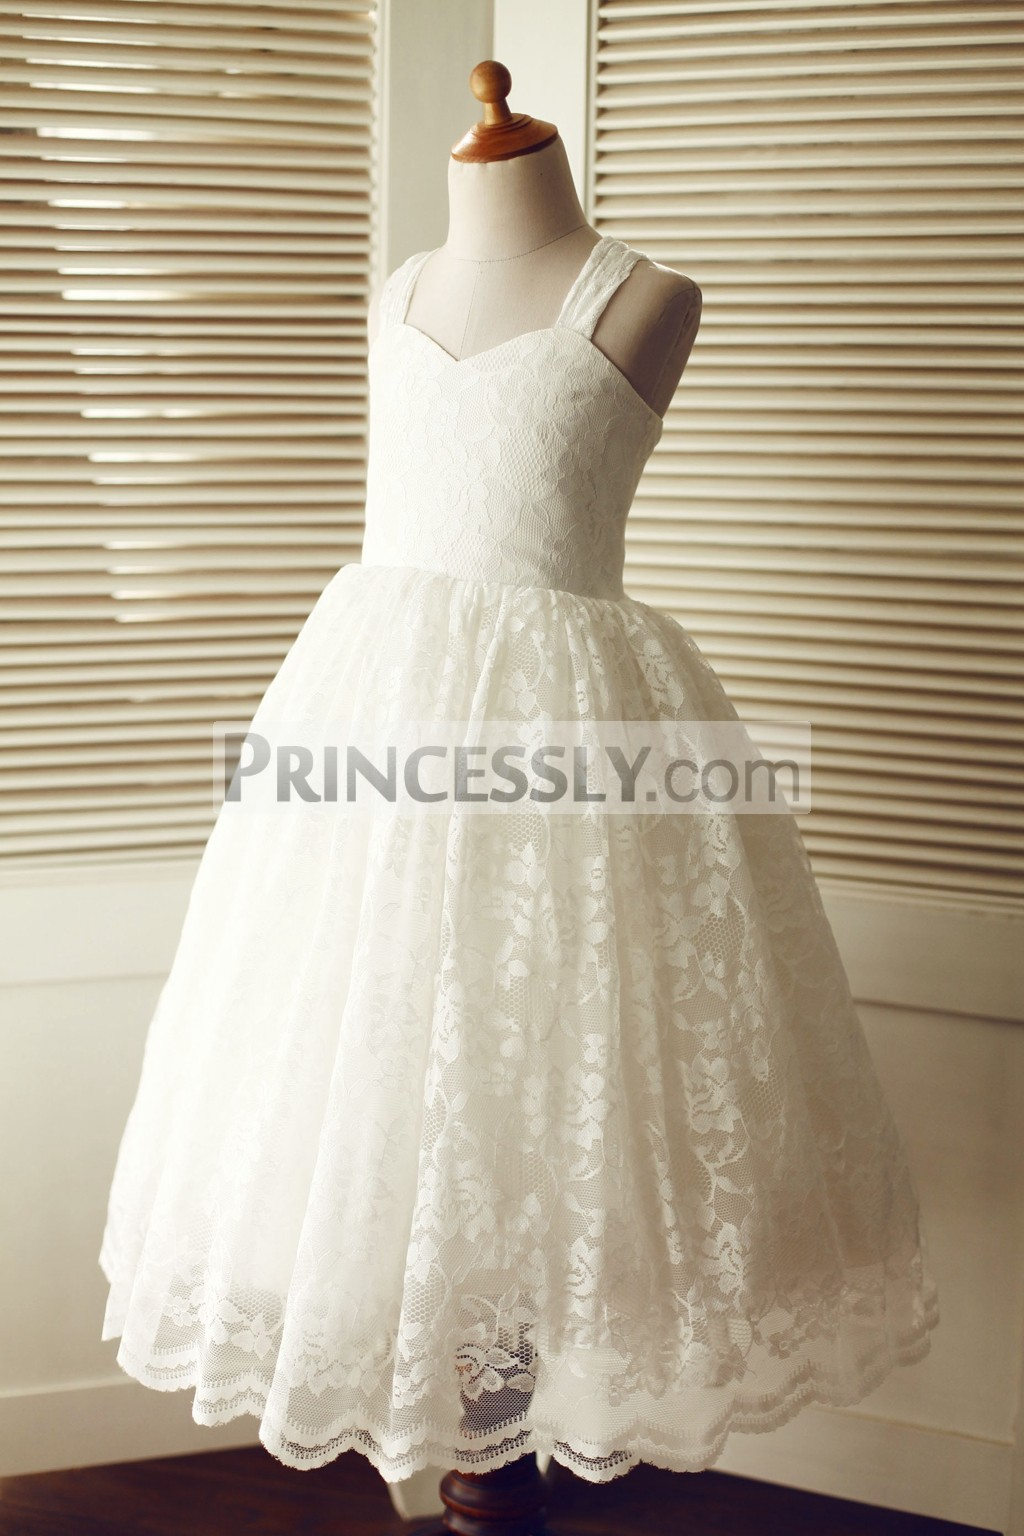 Ivory floral lace princess wedding baby girl dress